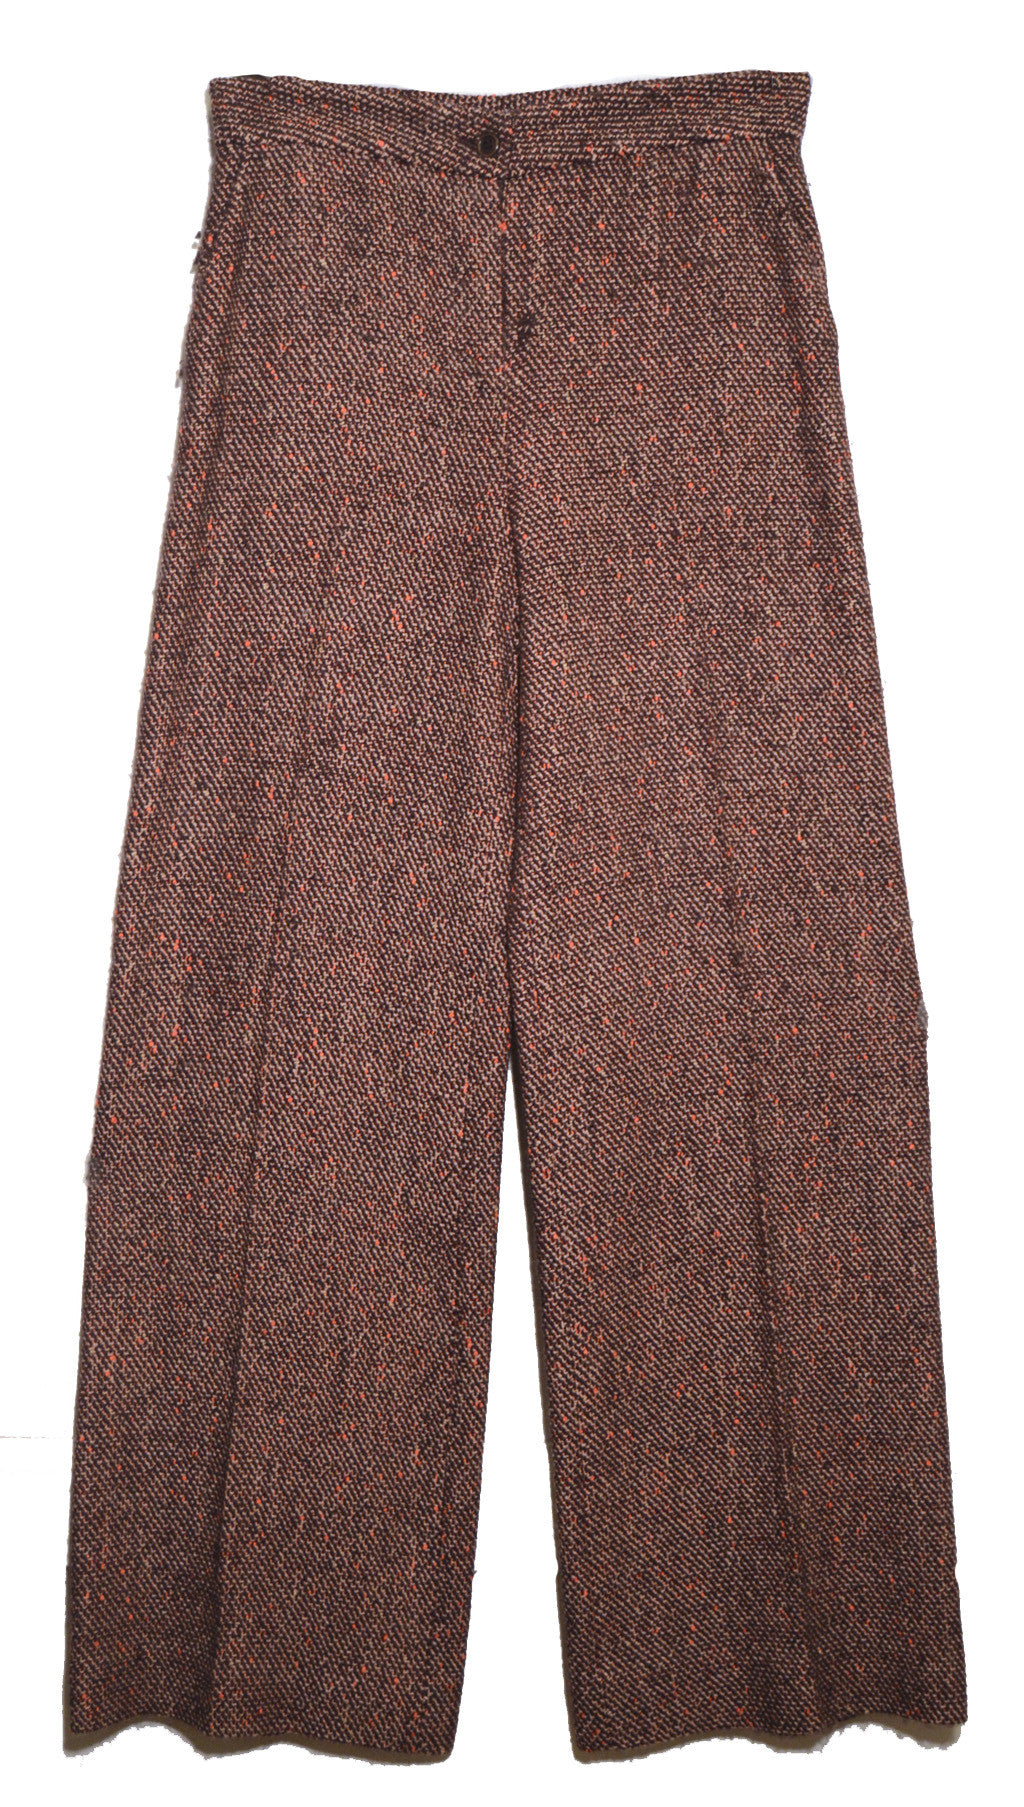 Christian Lacroix Vintage Wide Leg Burgundy Woven Wool Trousers Small 1970